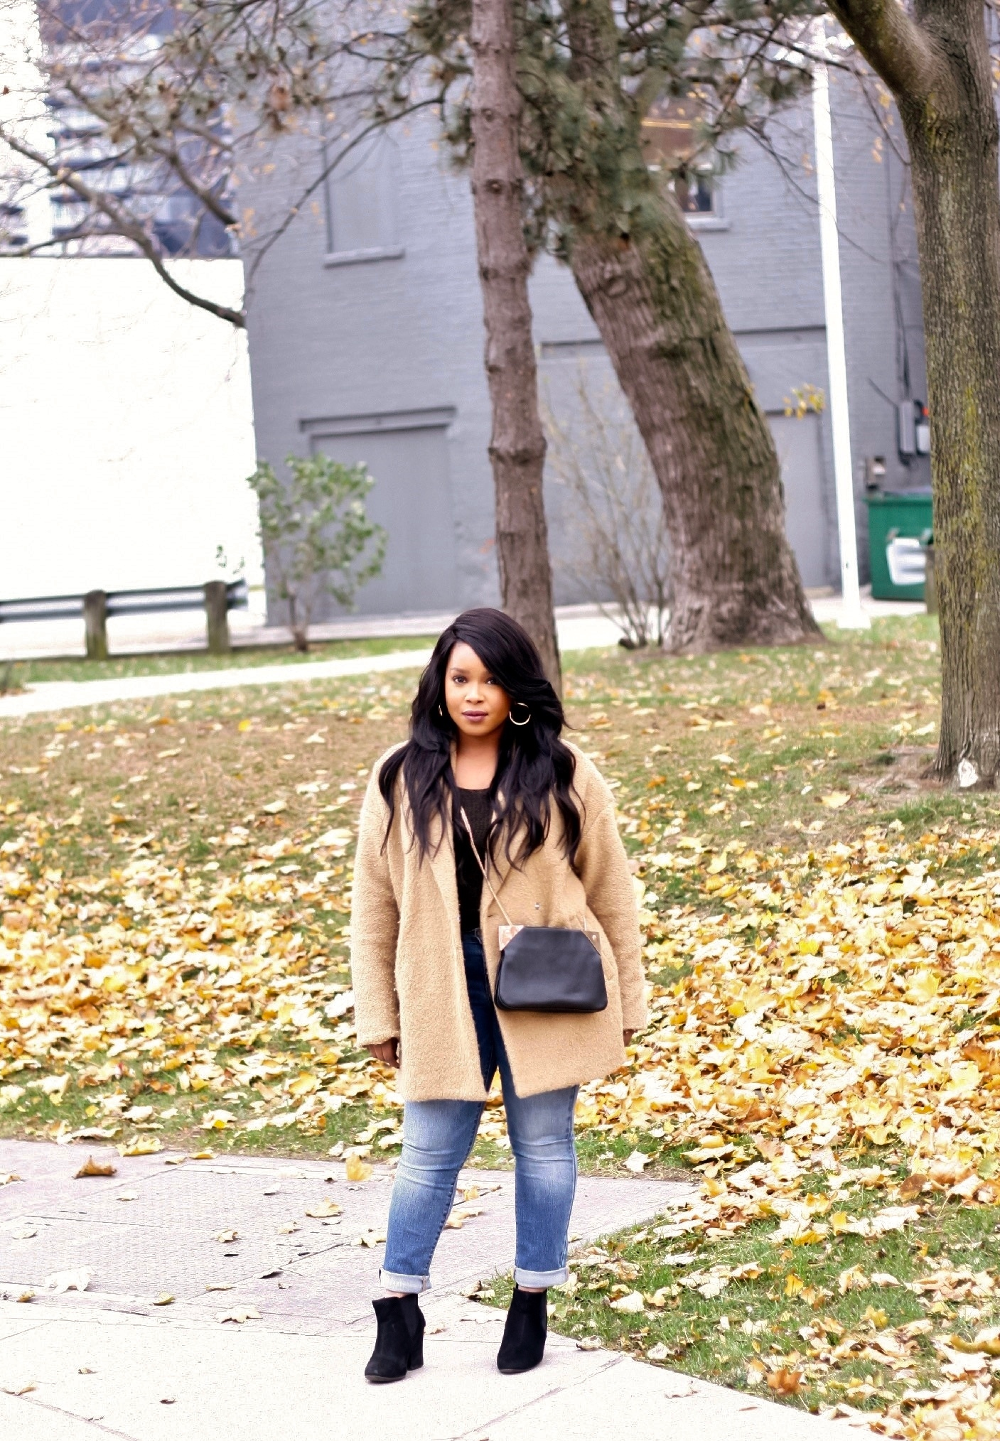 ae1eaf0d870 A fashion and personal style blog based in Toronto. Toronto Fashion Blog.  Toronto Personal Style Blog. Toronto Blogger. Medge Beauvoir